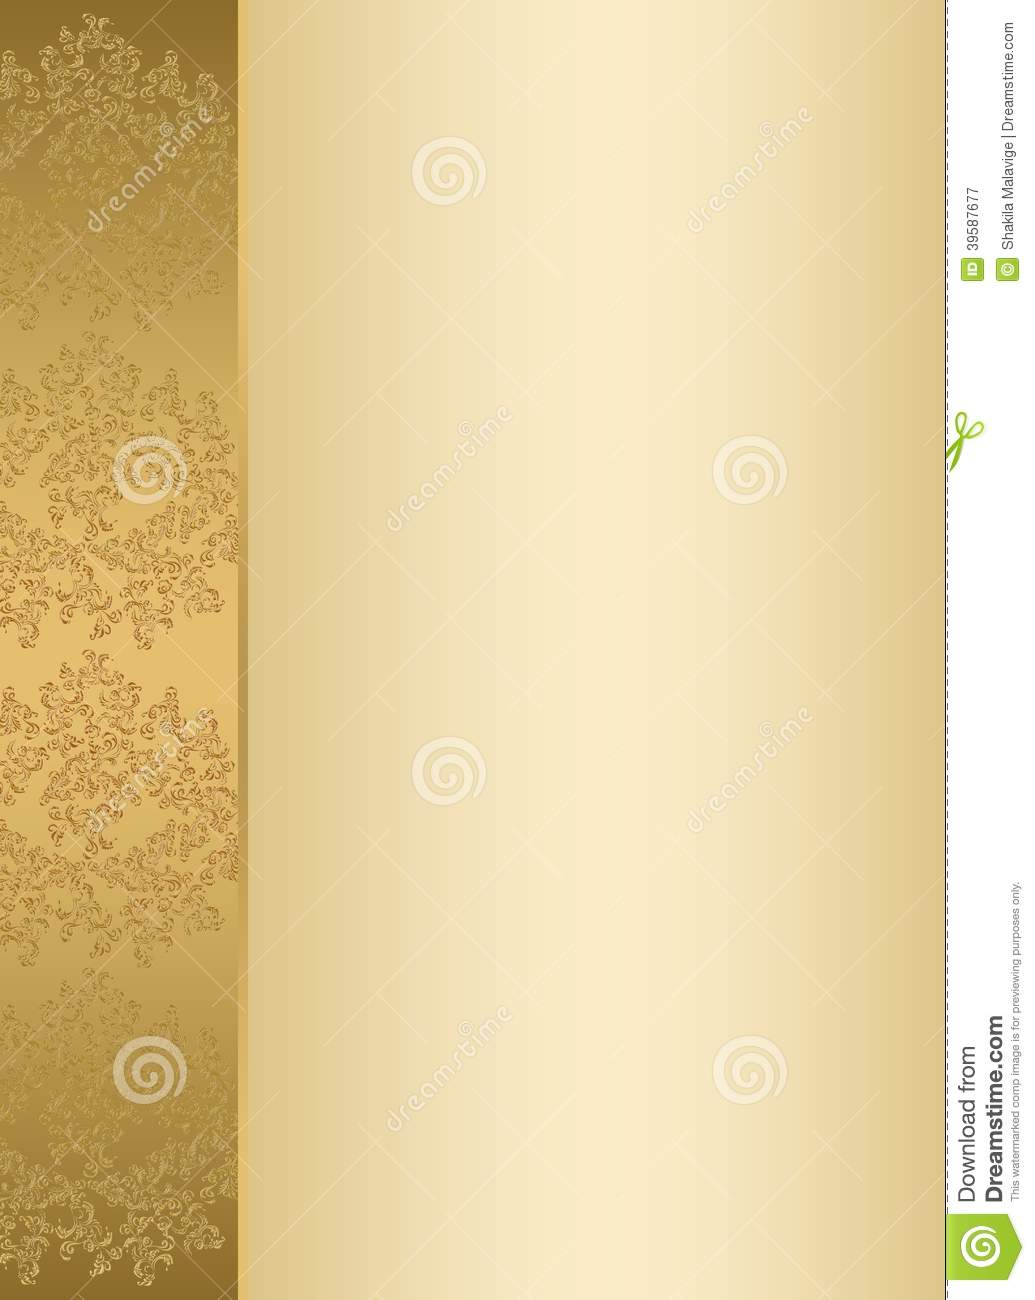 golden invitation card template stock image image of luxury